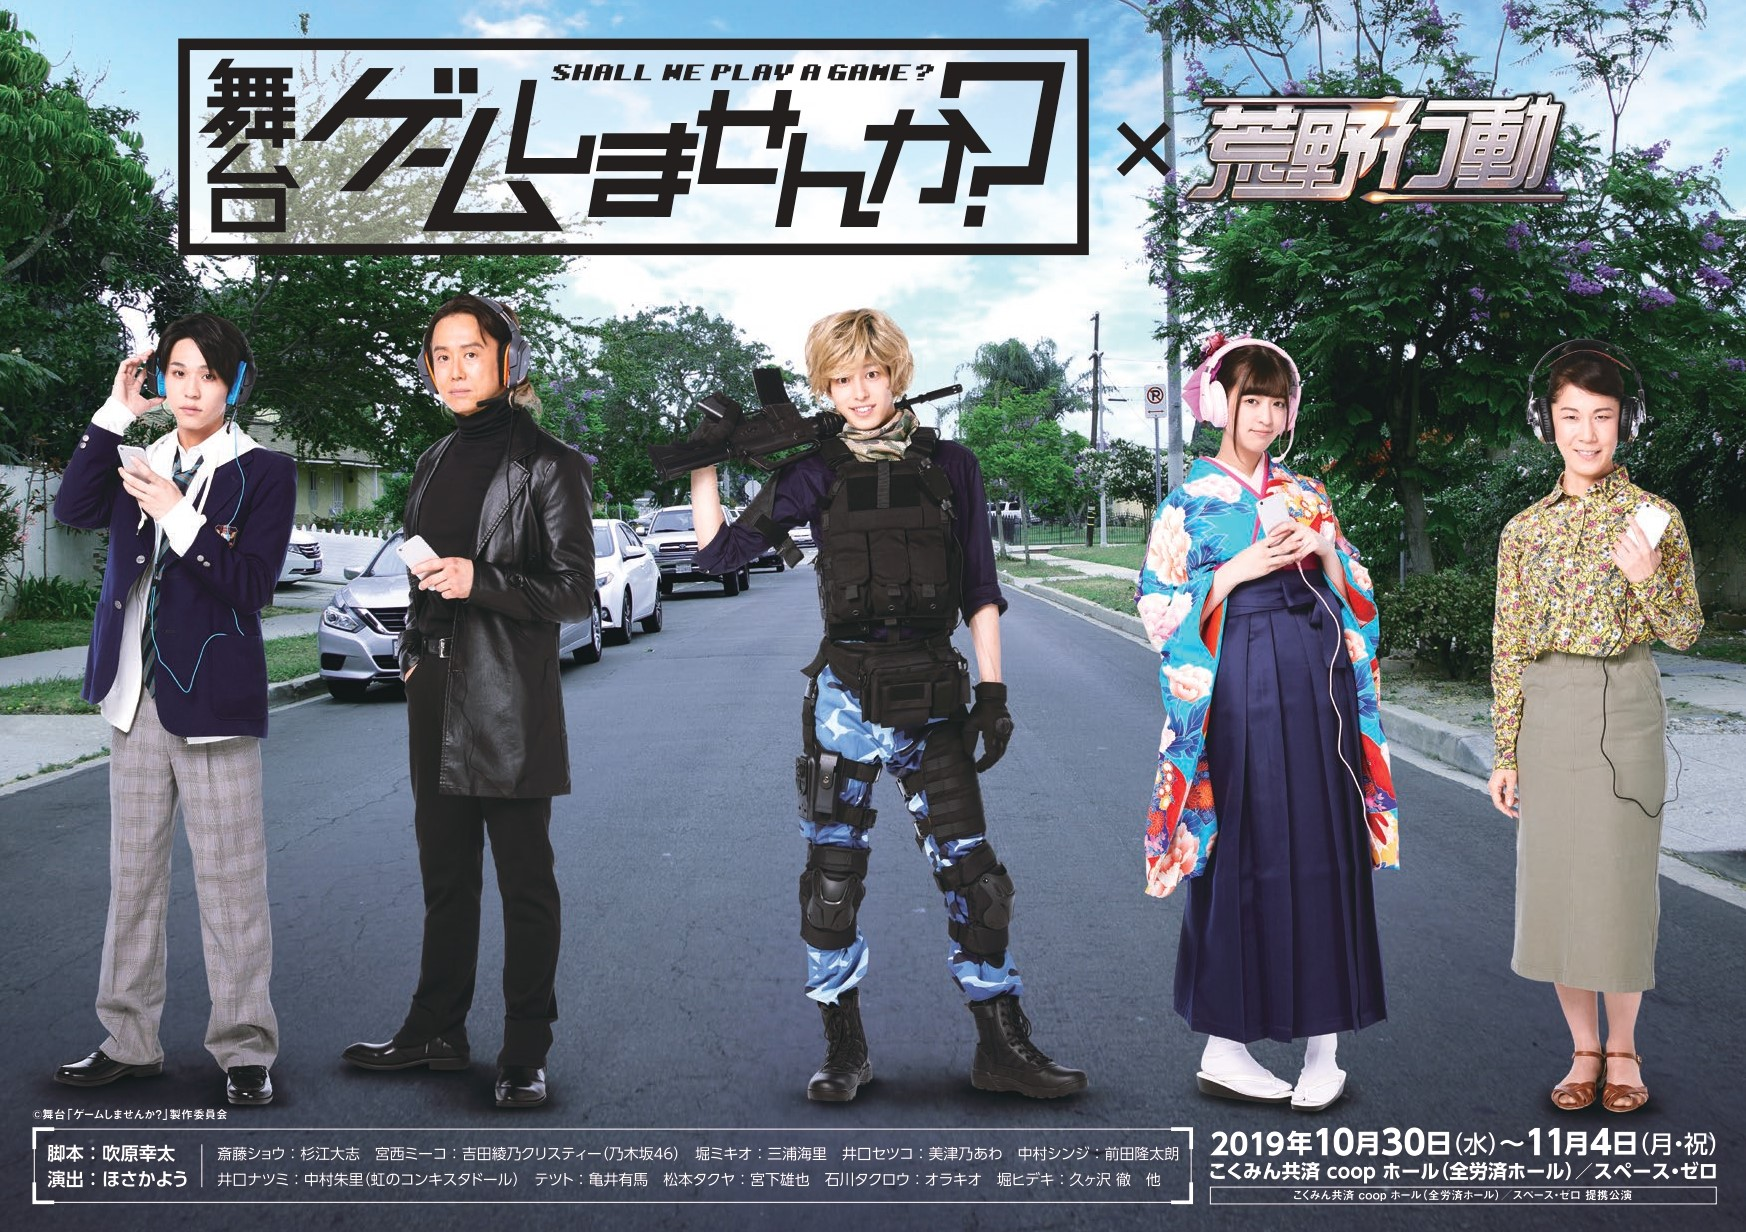 The Stage Play: Shall We Play A Game? x Knives Out